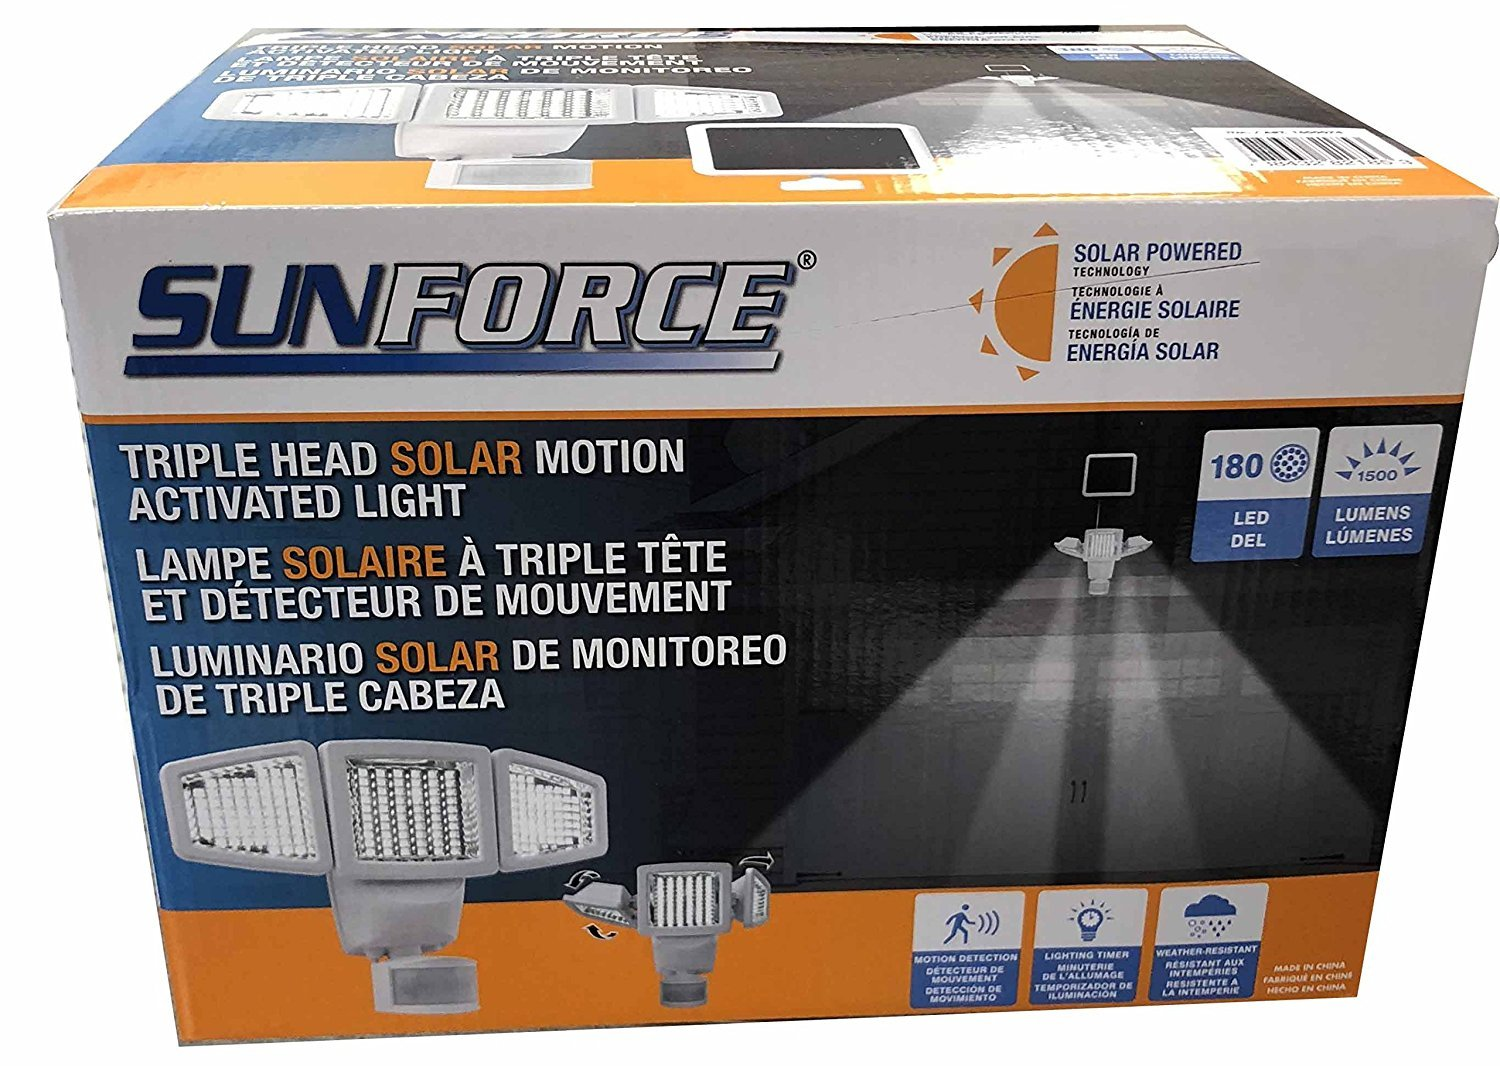 Sunforce Solar Triple Head Motion Activated Security Light 1500 Lumens by Sunforce